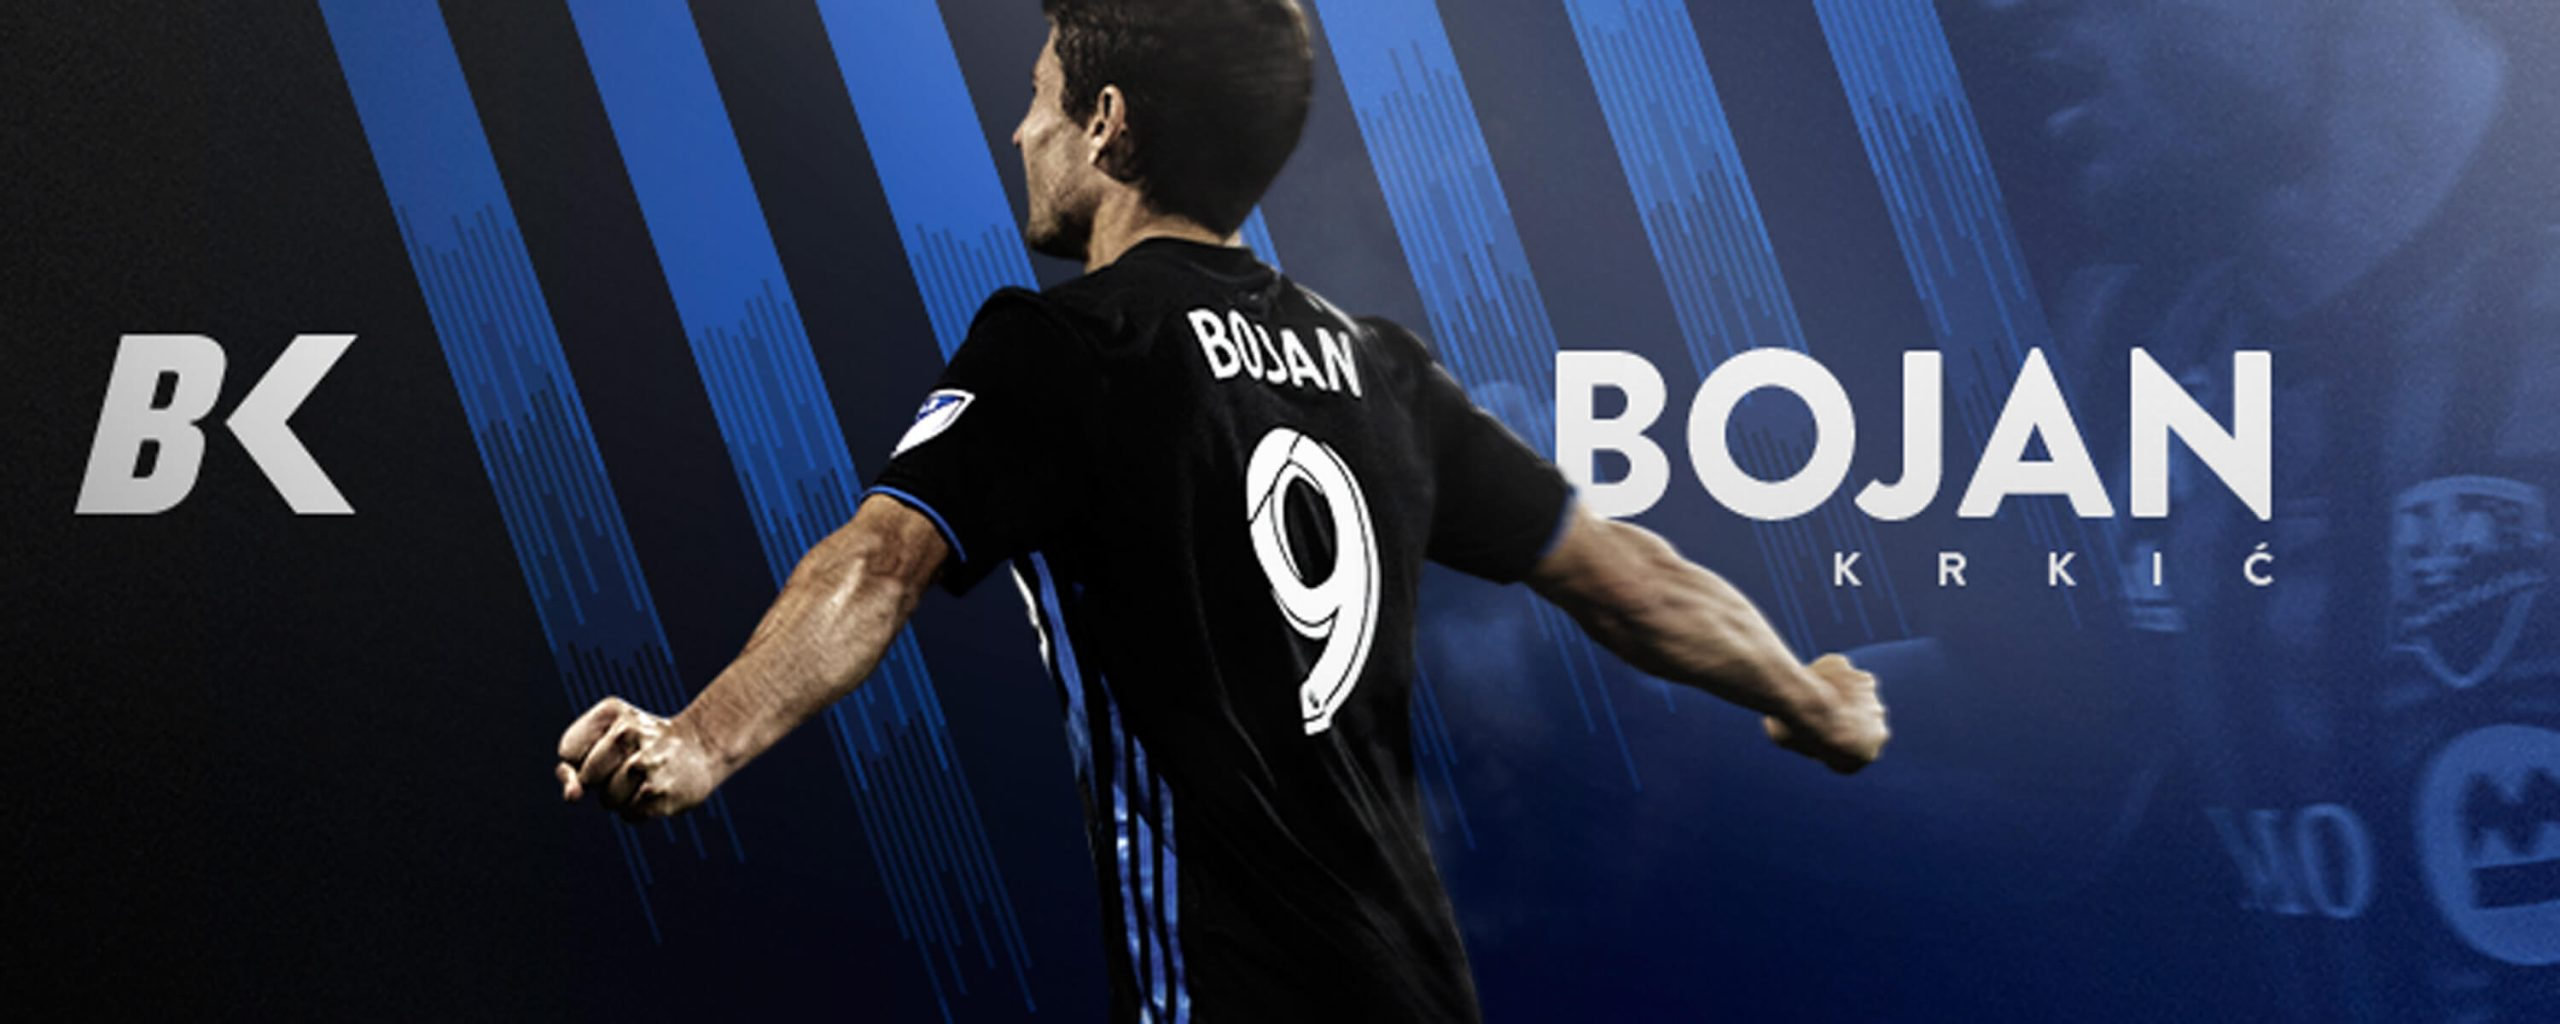 Bojan Krkic Fan Site